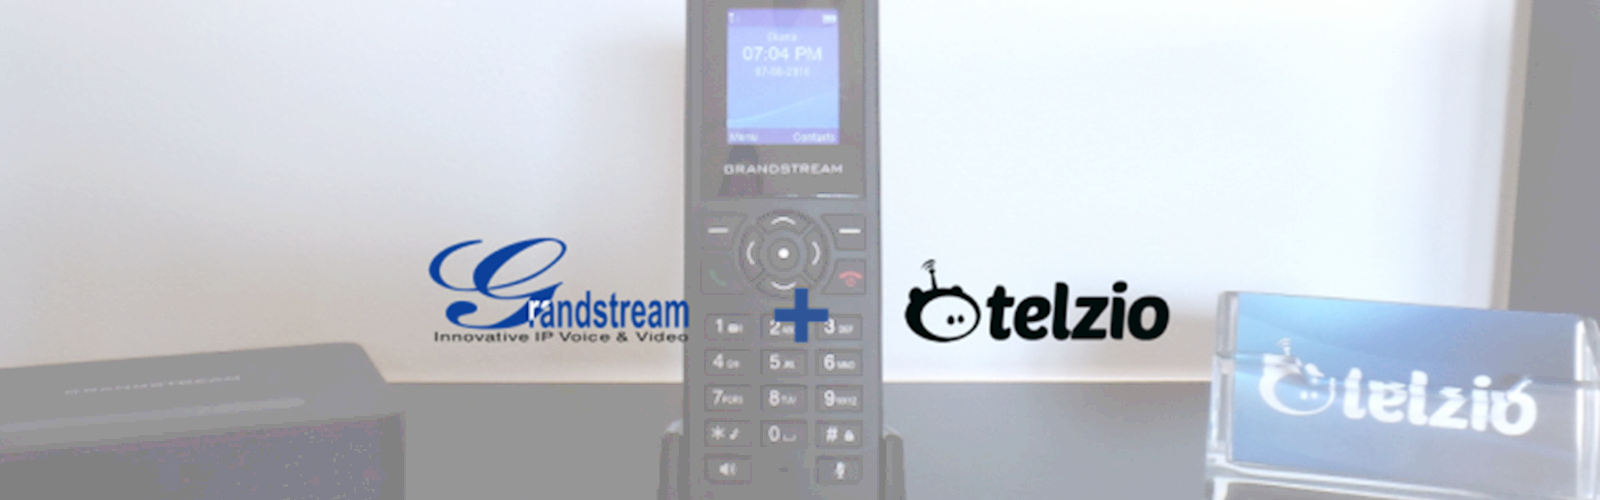 8 Things that makes the Grandstream DP720 Great - Telzio Blog